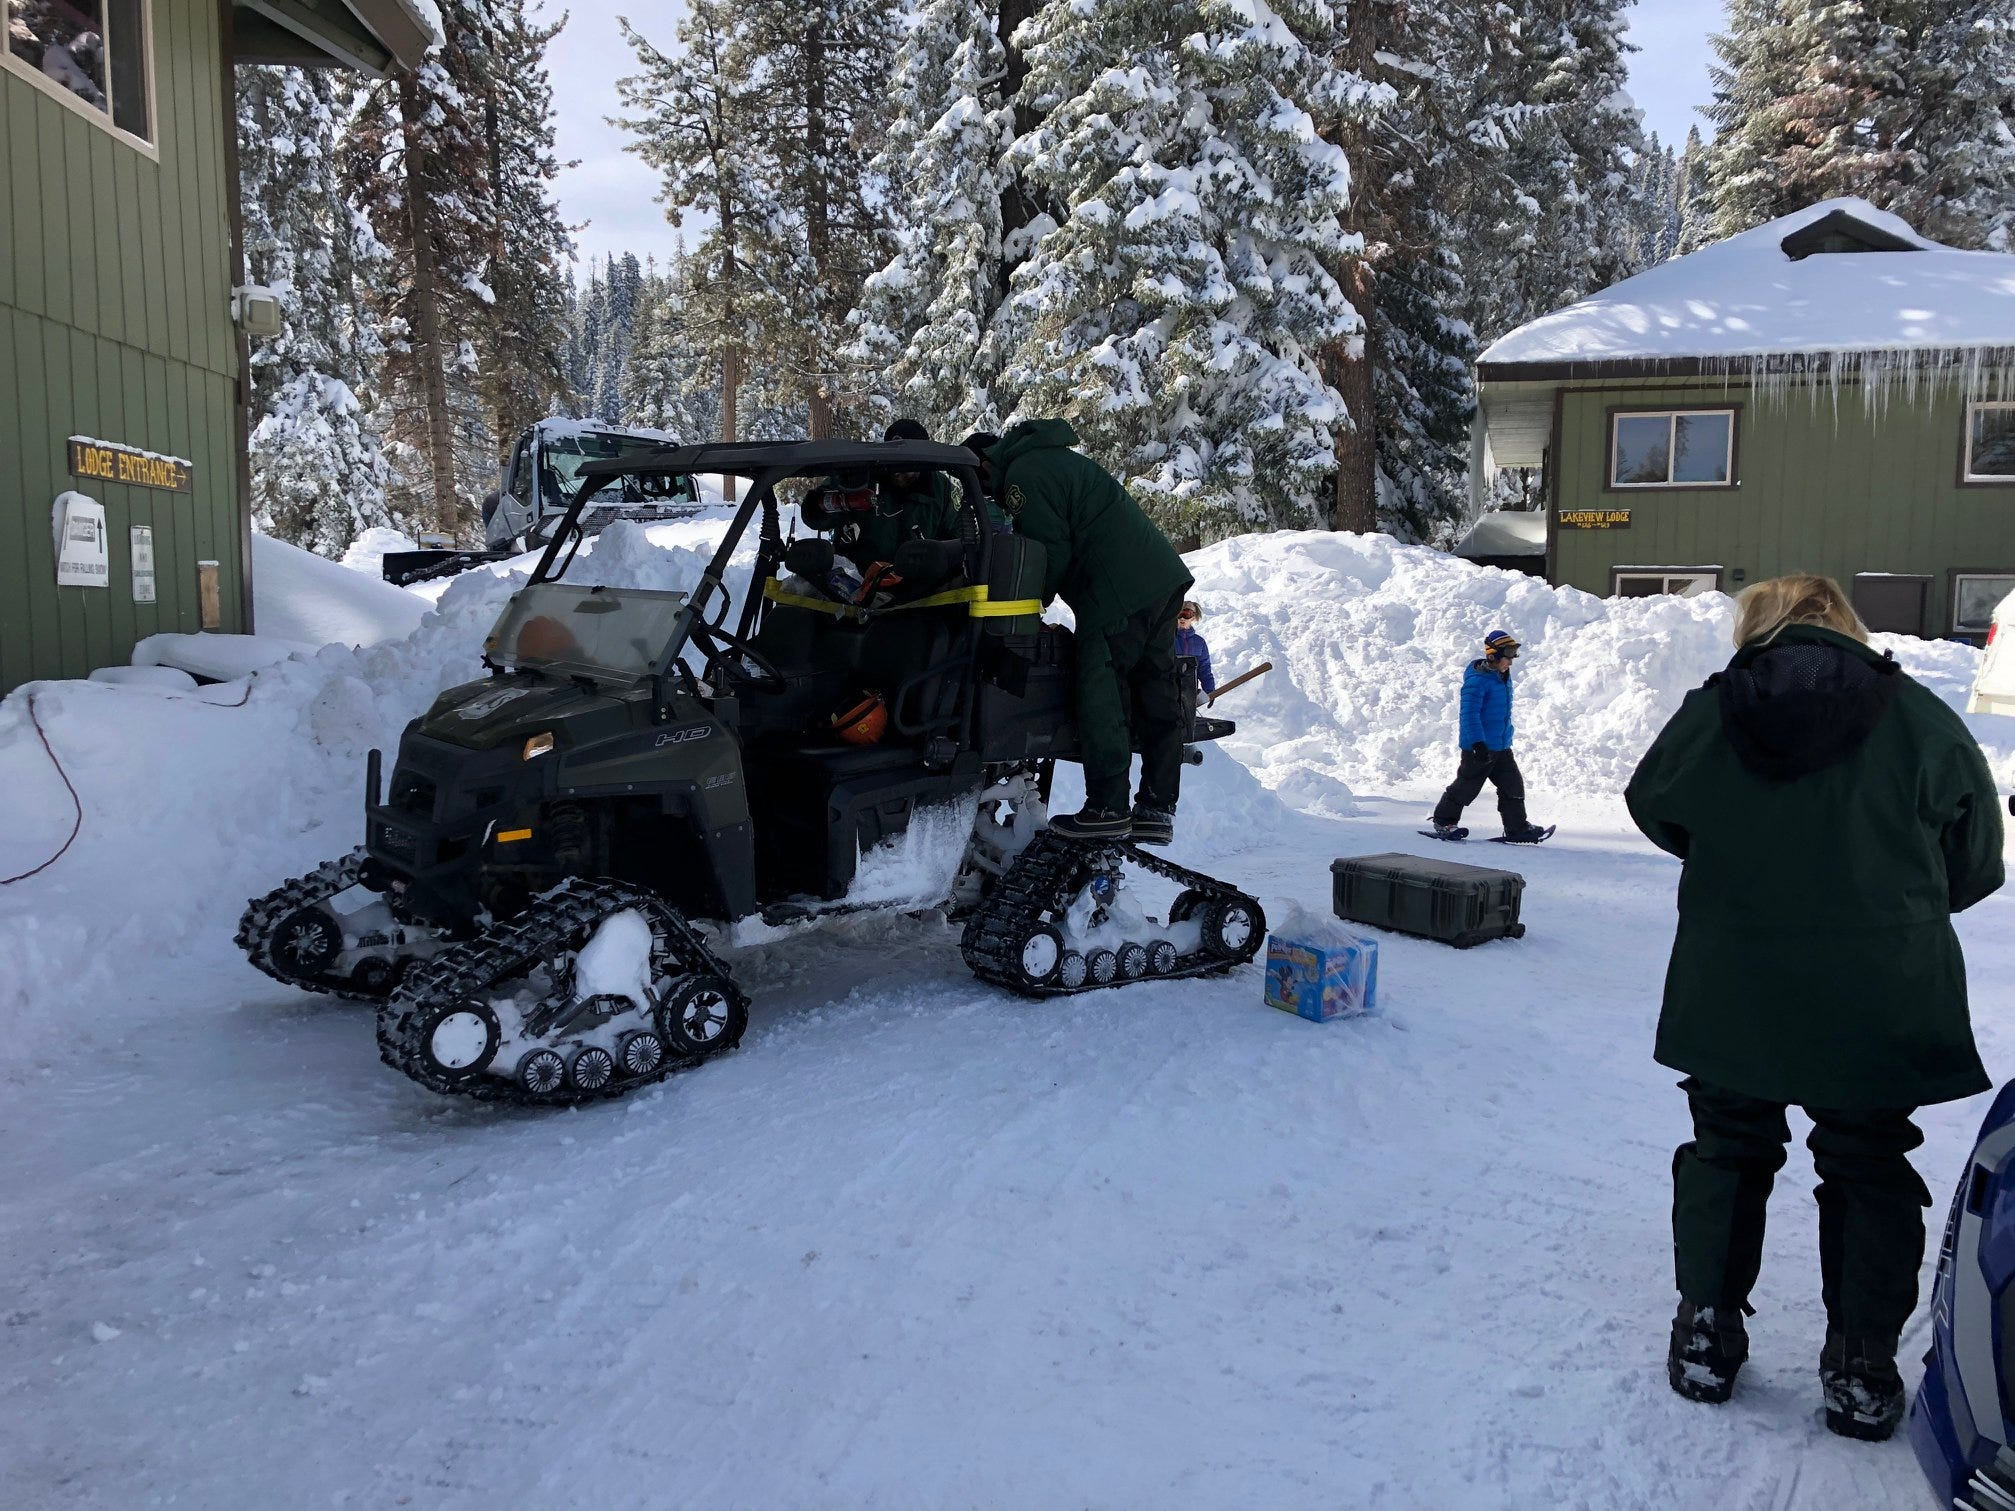 Following a snow storm earlier this week, 120 guests and staff at Sequoia National Forest's Montecito Lake Resort were snowbound.